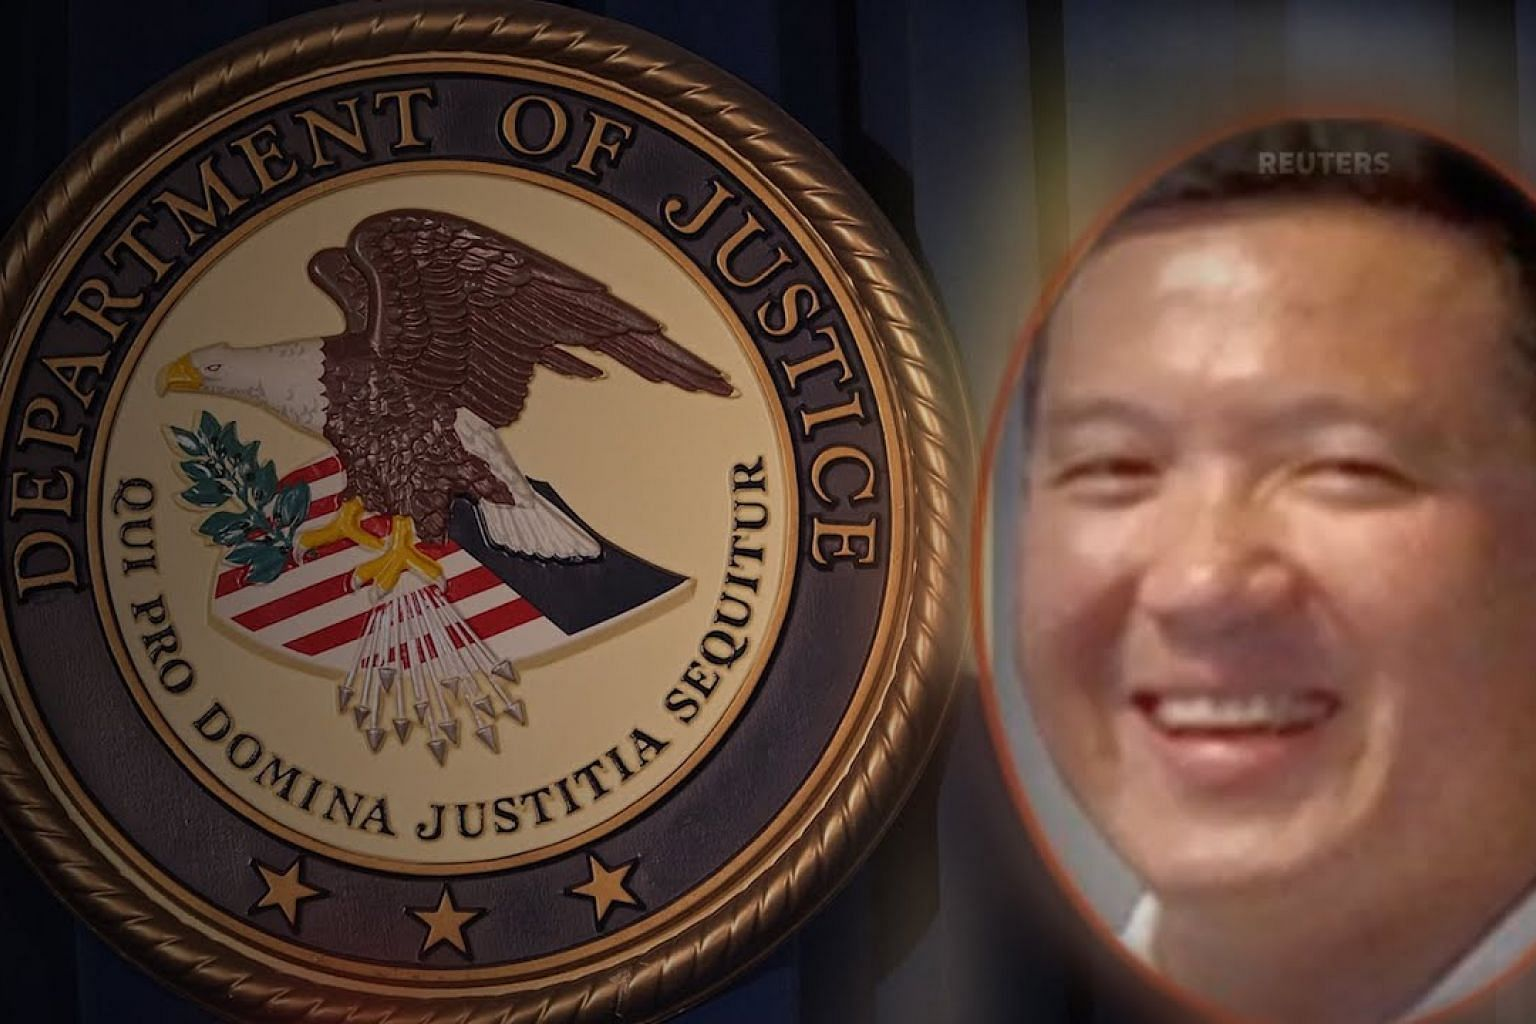 Ex-Goldman Sachs banker Roger Ng nabbed and waiting to be extradited to the US